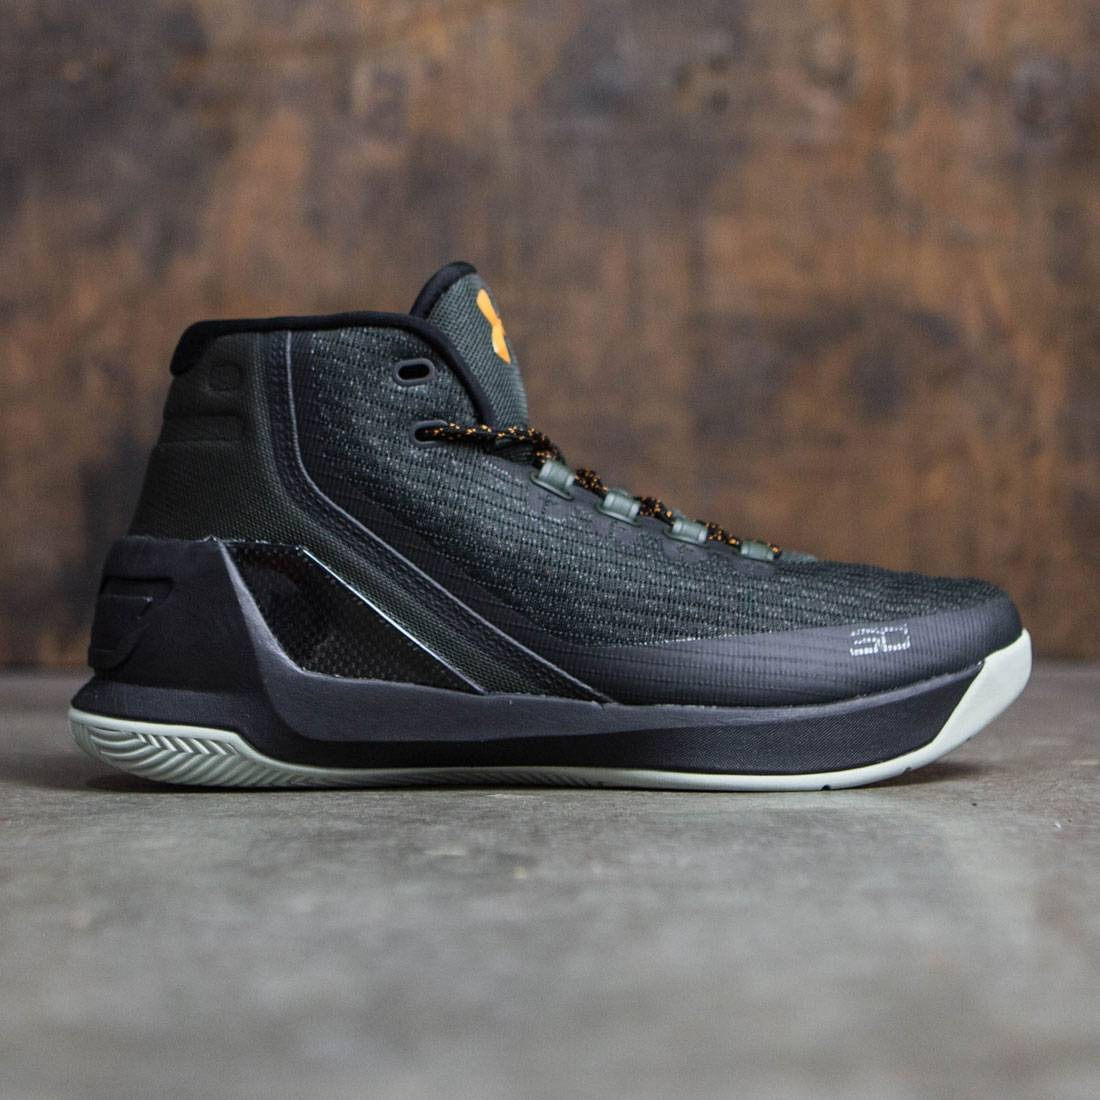 0854589c7960 Under Armour x Steph Curry Men Curry 3 - Flight Jacket (green   black)